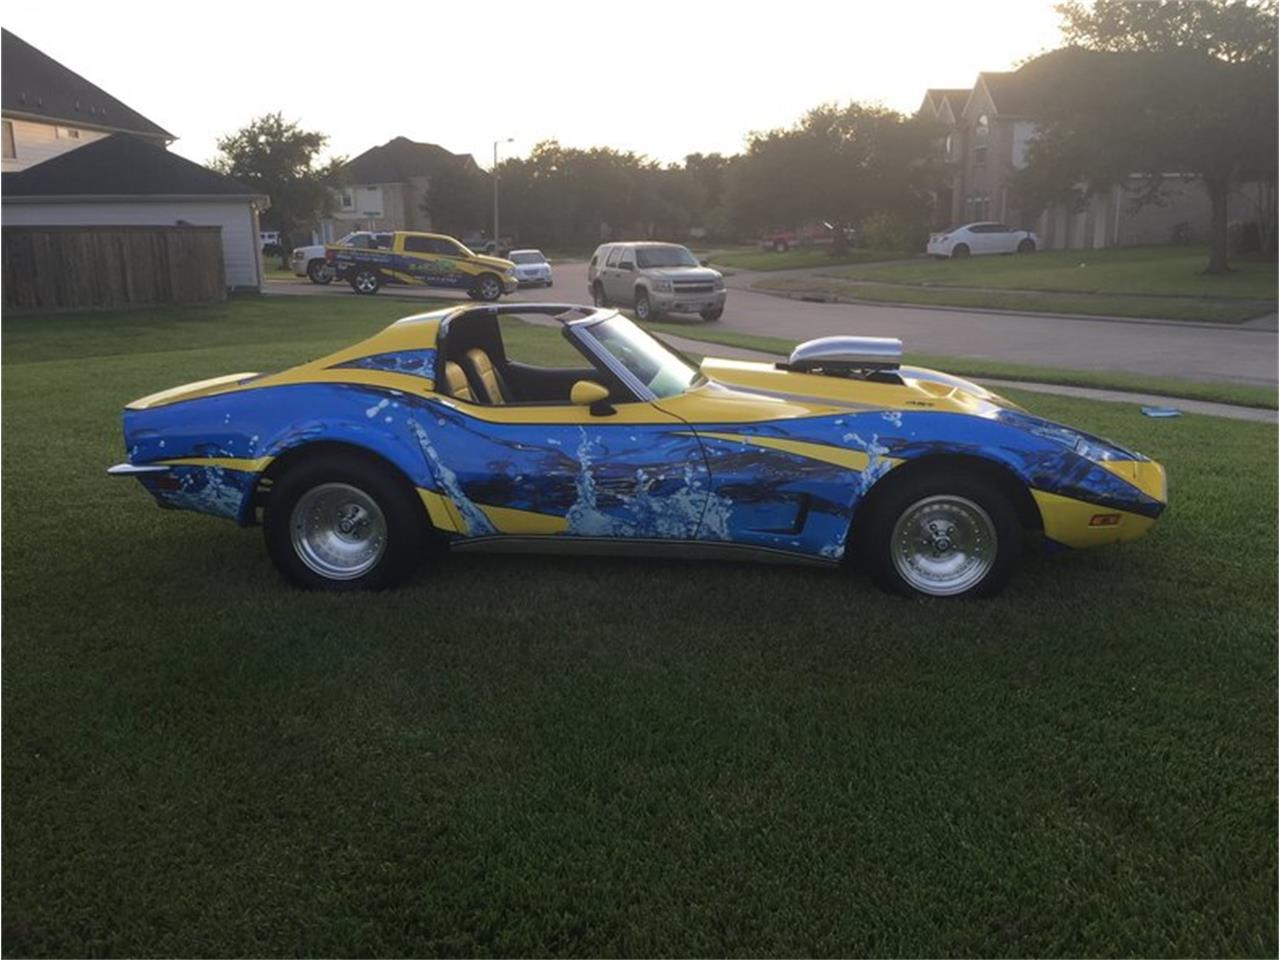 Large Picture of '73 Chevrolet Corvette located in Houston Texas Auction Vehicle - MB01